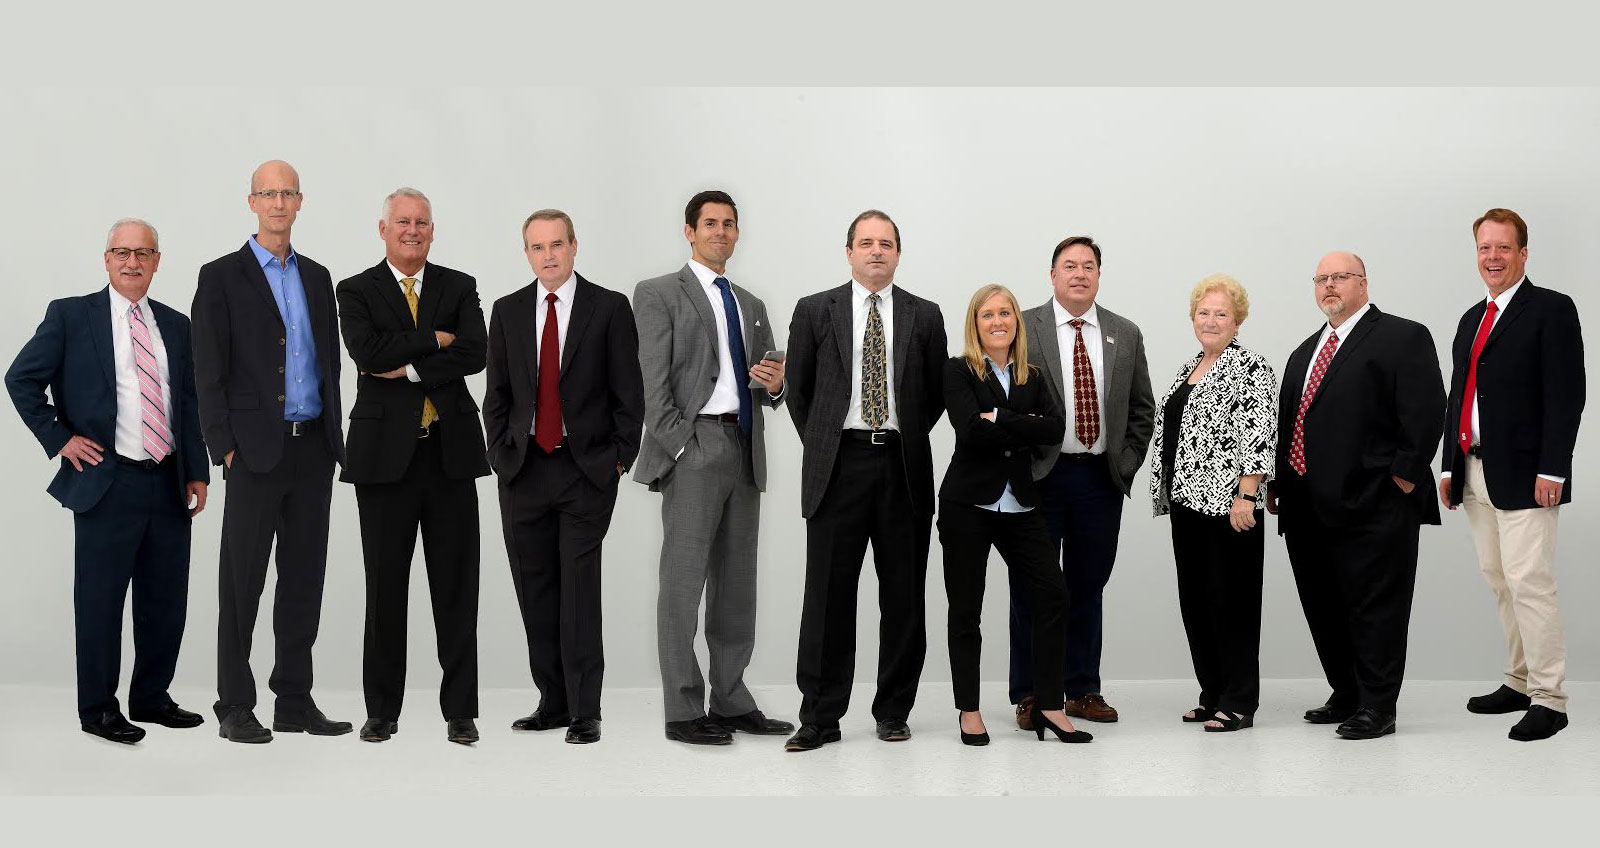 Photo of new Poole College faculty and those who advanced to new roles